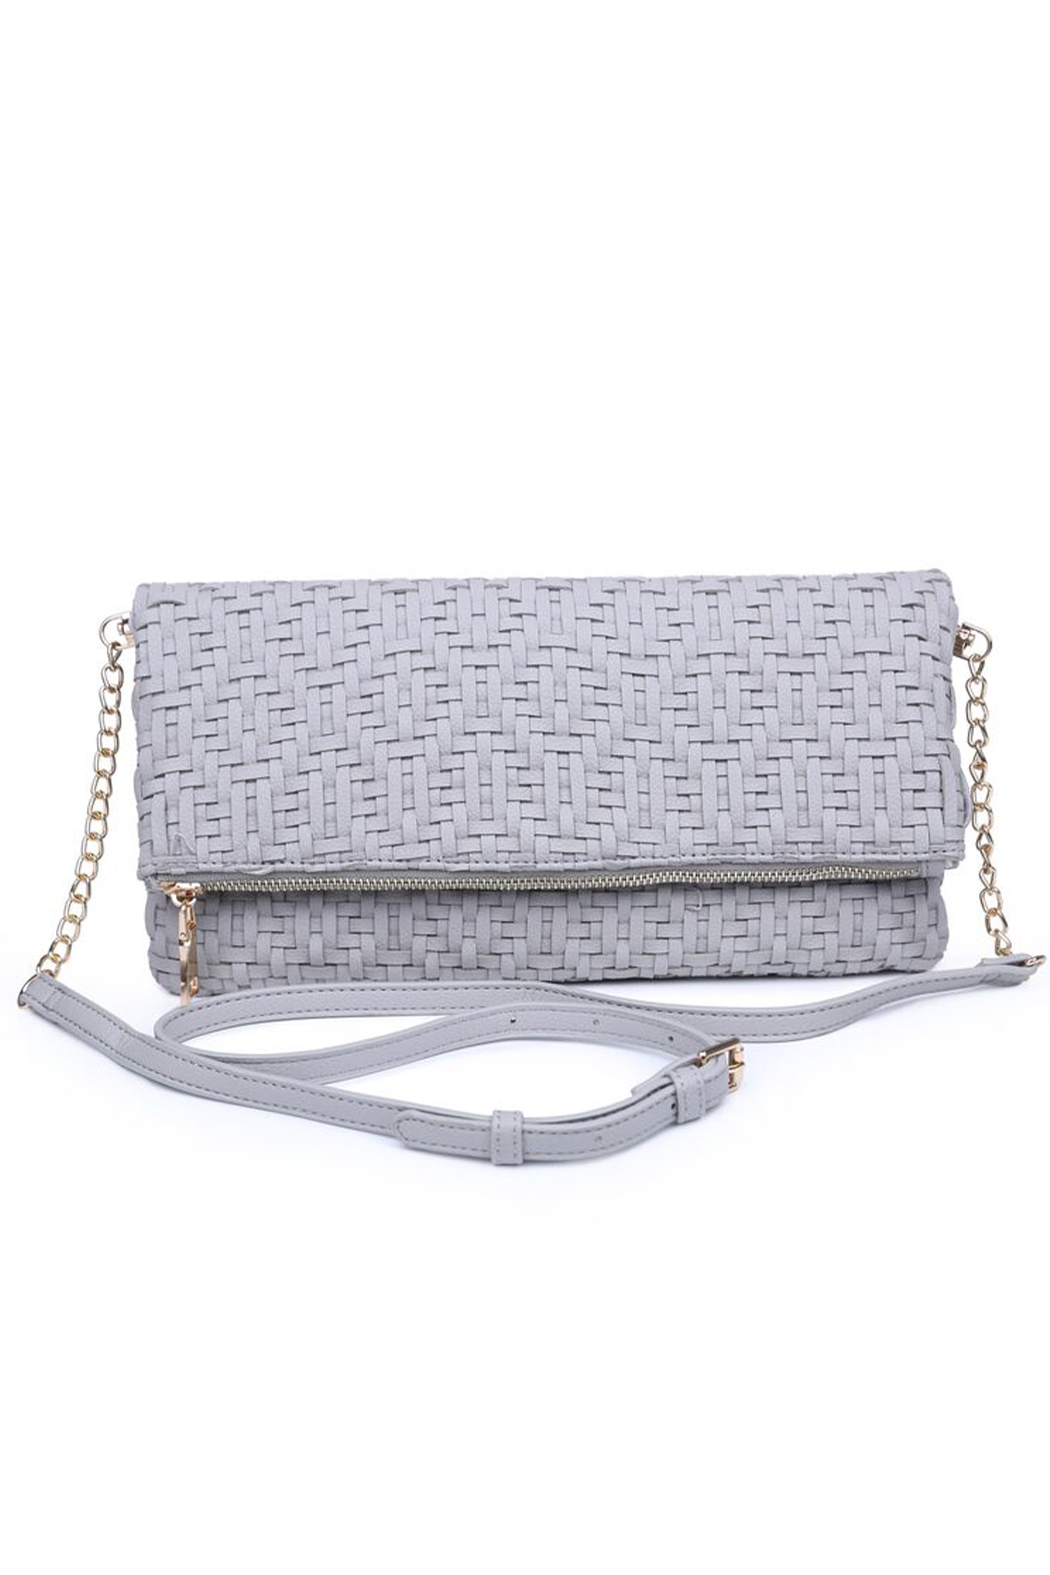 Urban Expressions Rooney Clutch with Adjustable C/B Strap - Main Image